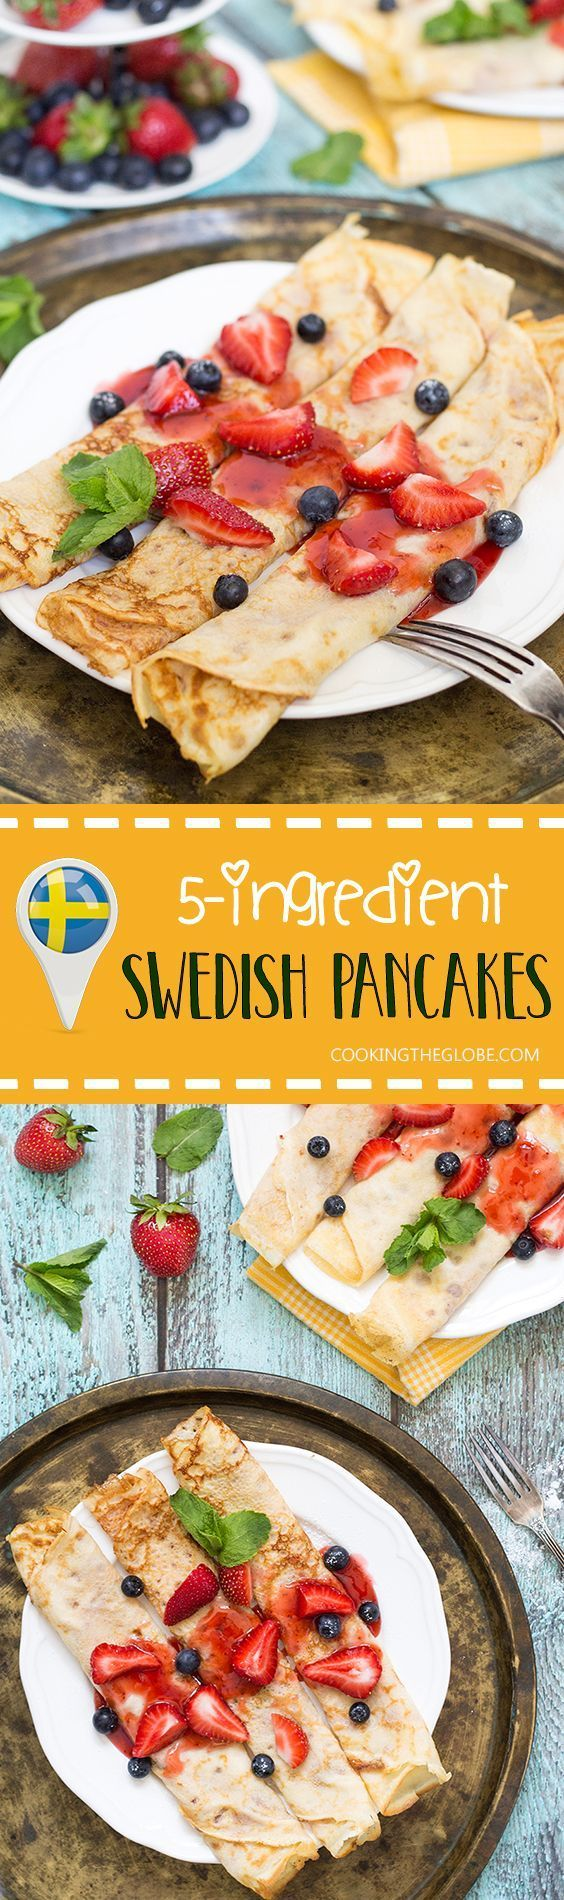 Swedish Pancakes can be stuffed or topped with any sweet ingredients you like. This recipe requires only 5 ingredients and is super simple!